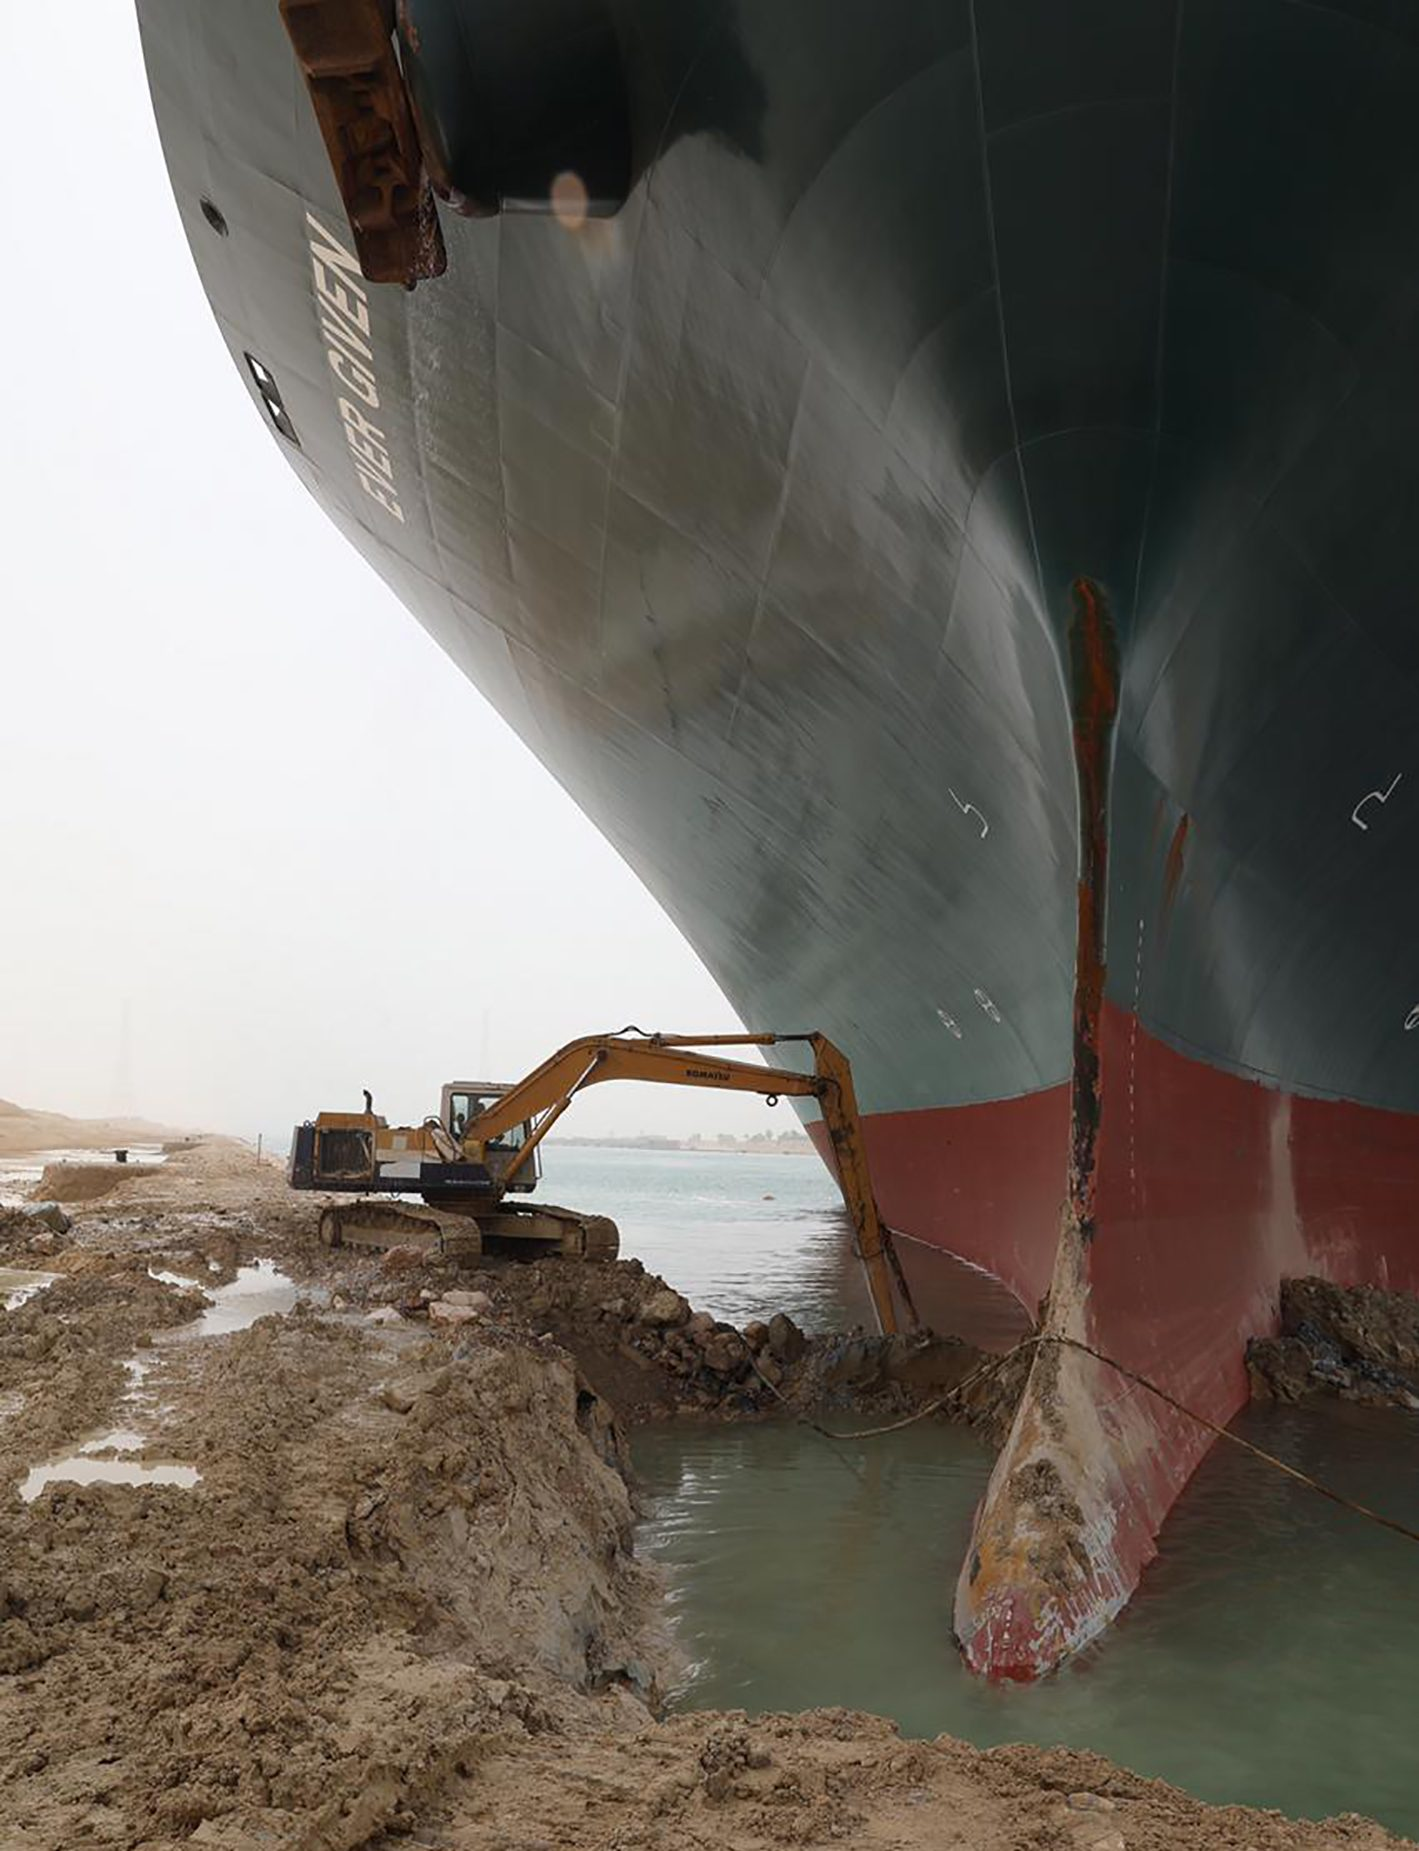 A giant container ship being dug out of the sand